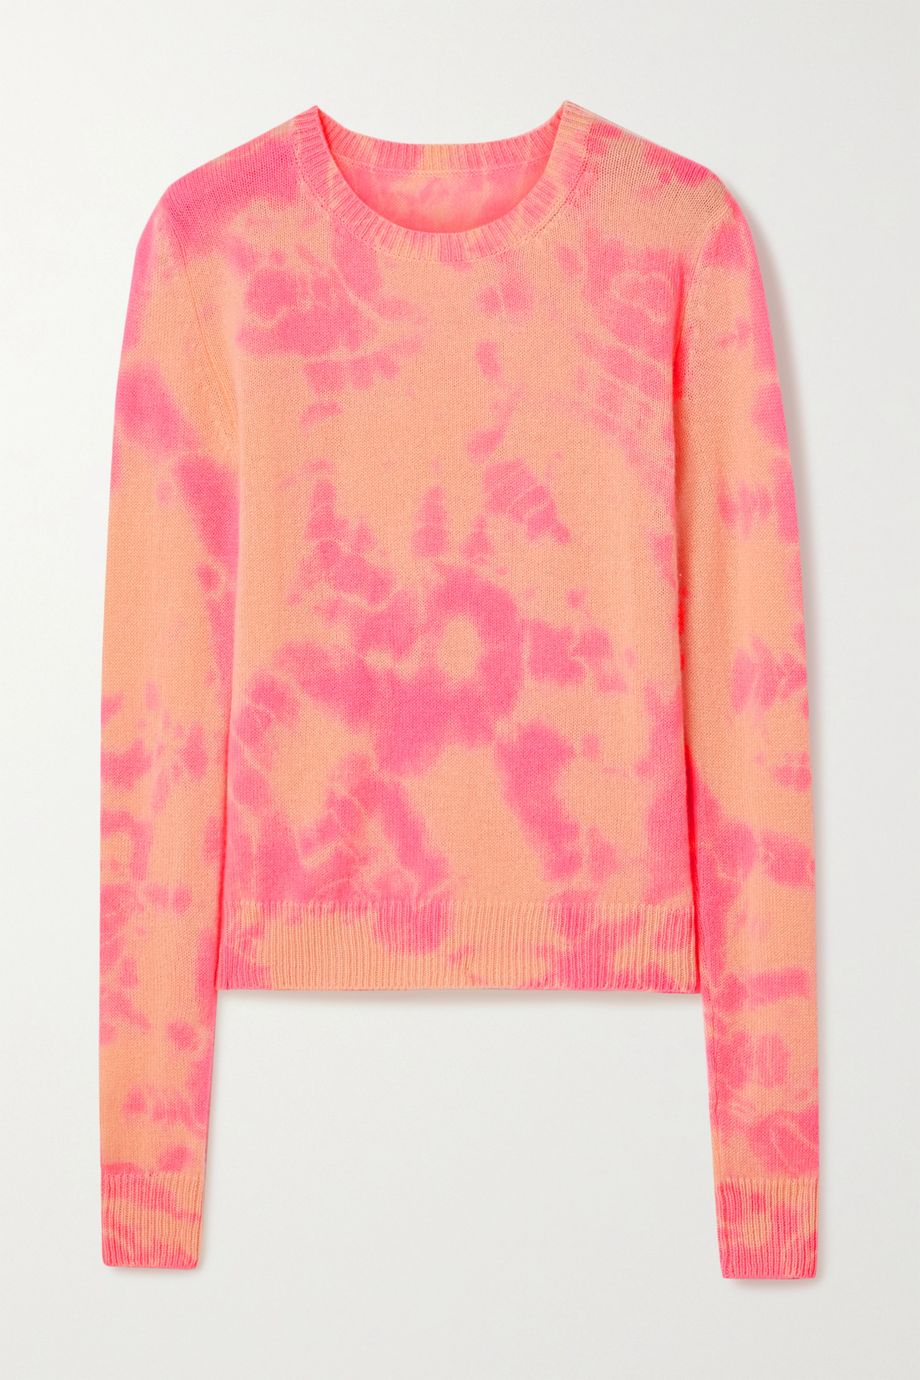 The Elder Statesman Hot Tranquility tie-dyed cashmere sweater